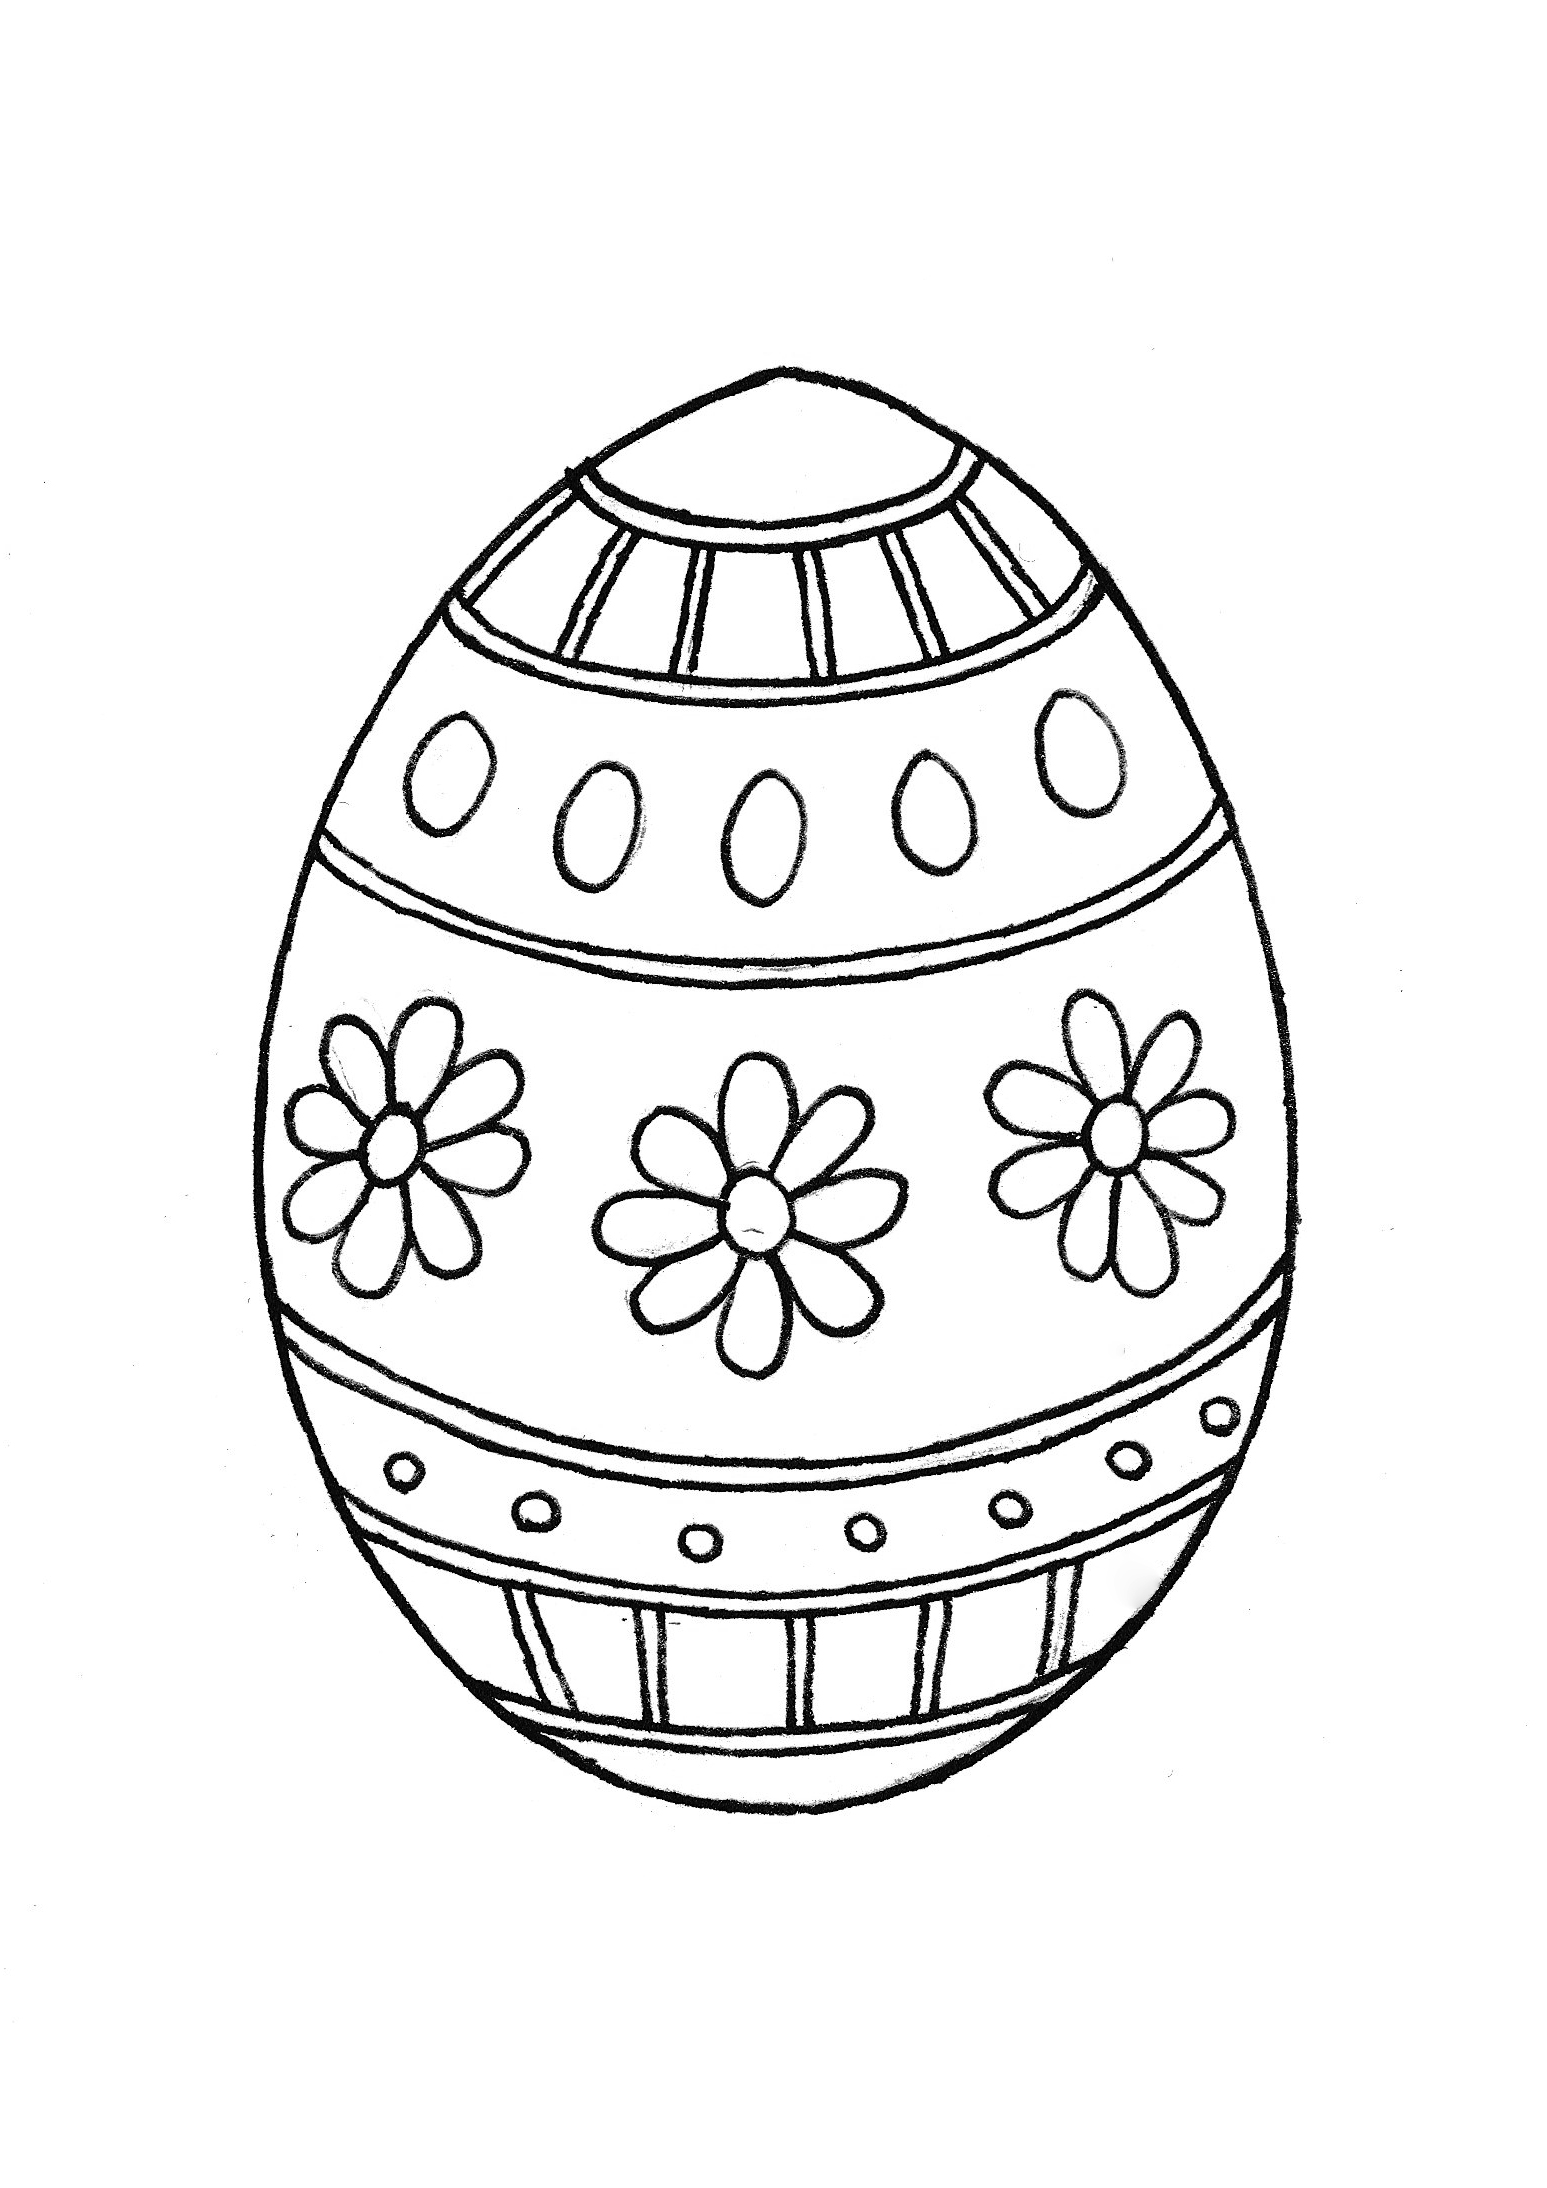 easter egg template happy easter egg coloring pages for kids easter template easter egg template